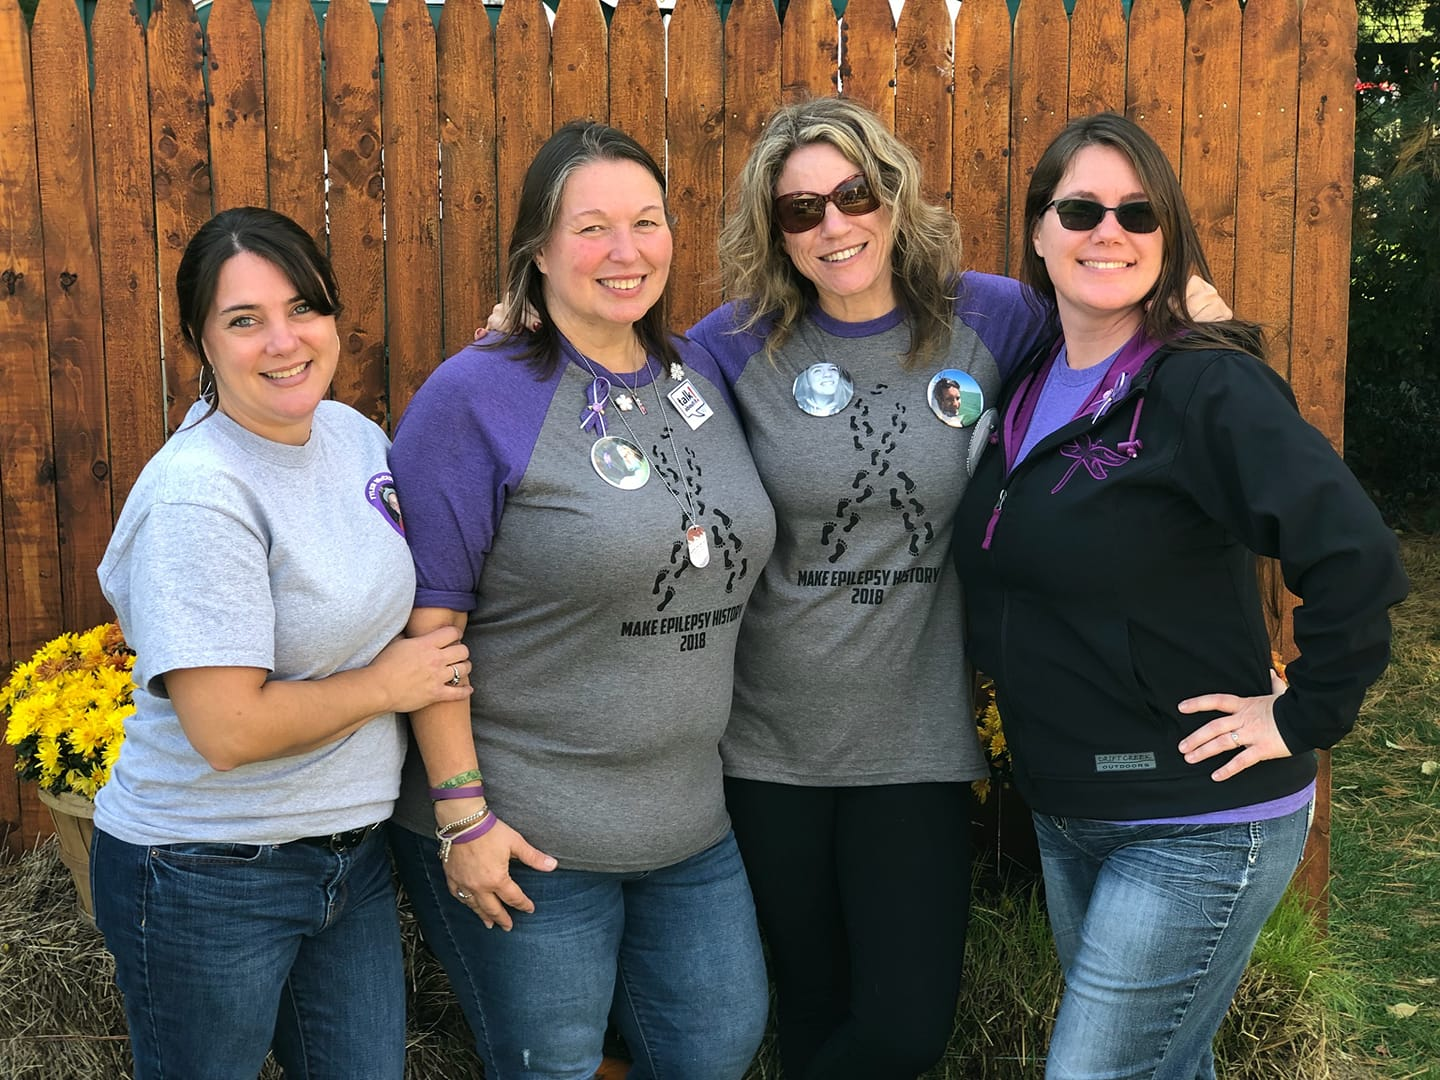 These 4 moms attended our NH Walk for Epilepsy on 10.14.18. They each have lost a young person to SUDEP within the last 2 years and they found each other through Epilepsy Foundation NE. This was the 2nd year we held the walk on 10.14; Amberlee Carroll died on 10.14.16 at age 18. Mom Tracy is 2nd from left. To the far right is Angela Miller whose daughter Dakota died on 10.15.16; the girls had almost the same birthdate. Far left: Sheri Higgins lost her 20 year old son Tyler in 2016. Lori Worrall lost her 20 year old daughter Emily in 2018.